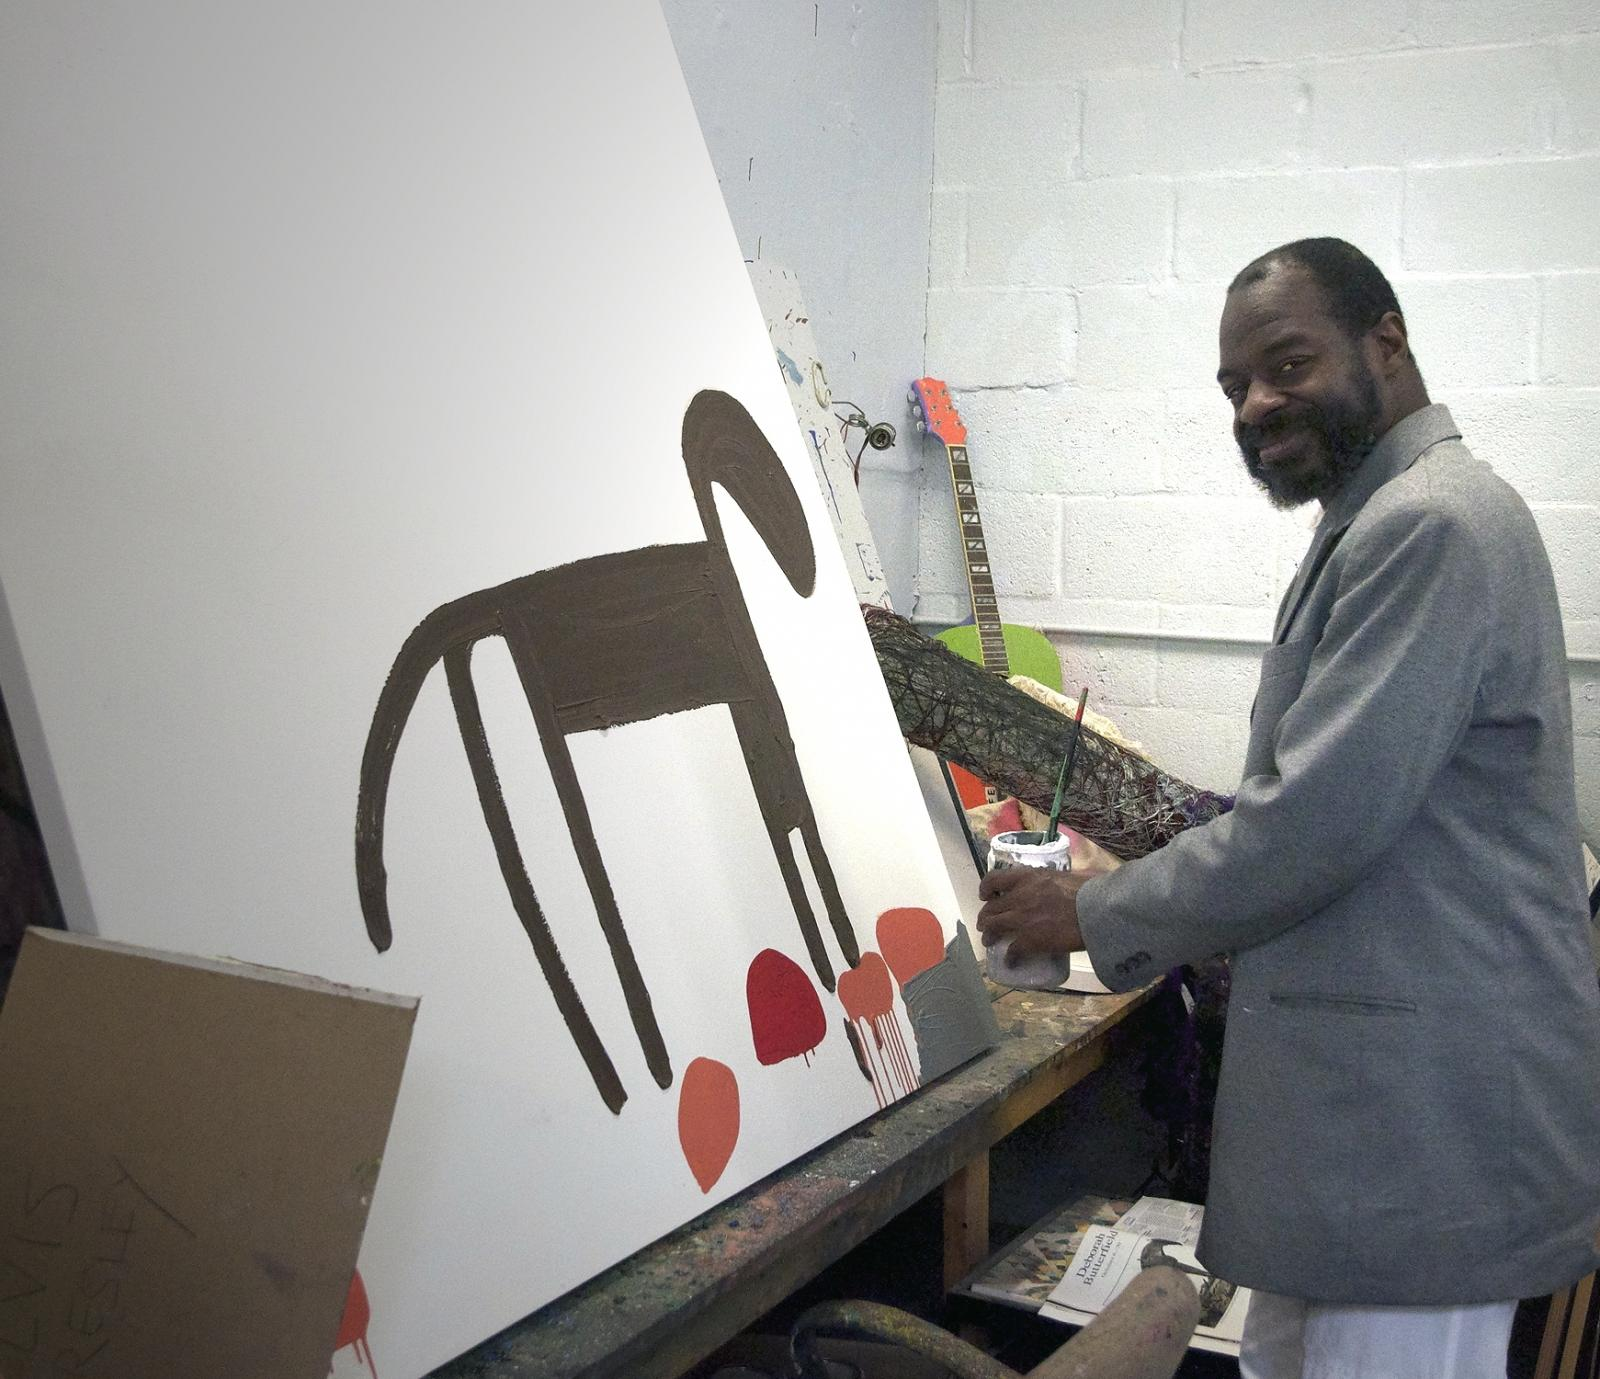 Marlon Mullen in the studio, images courtesy NIAD